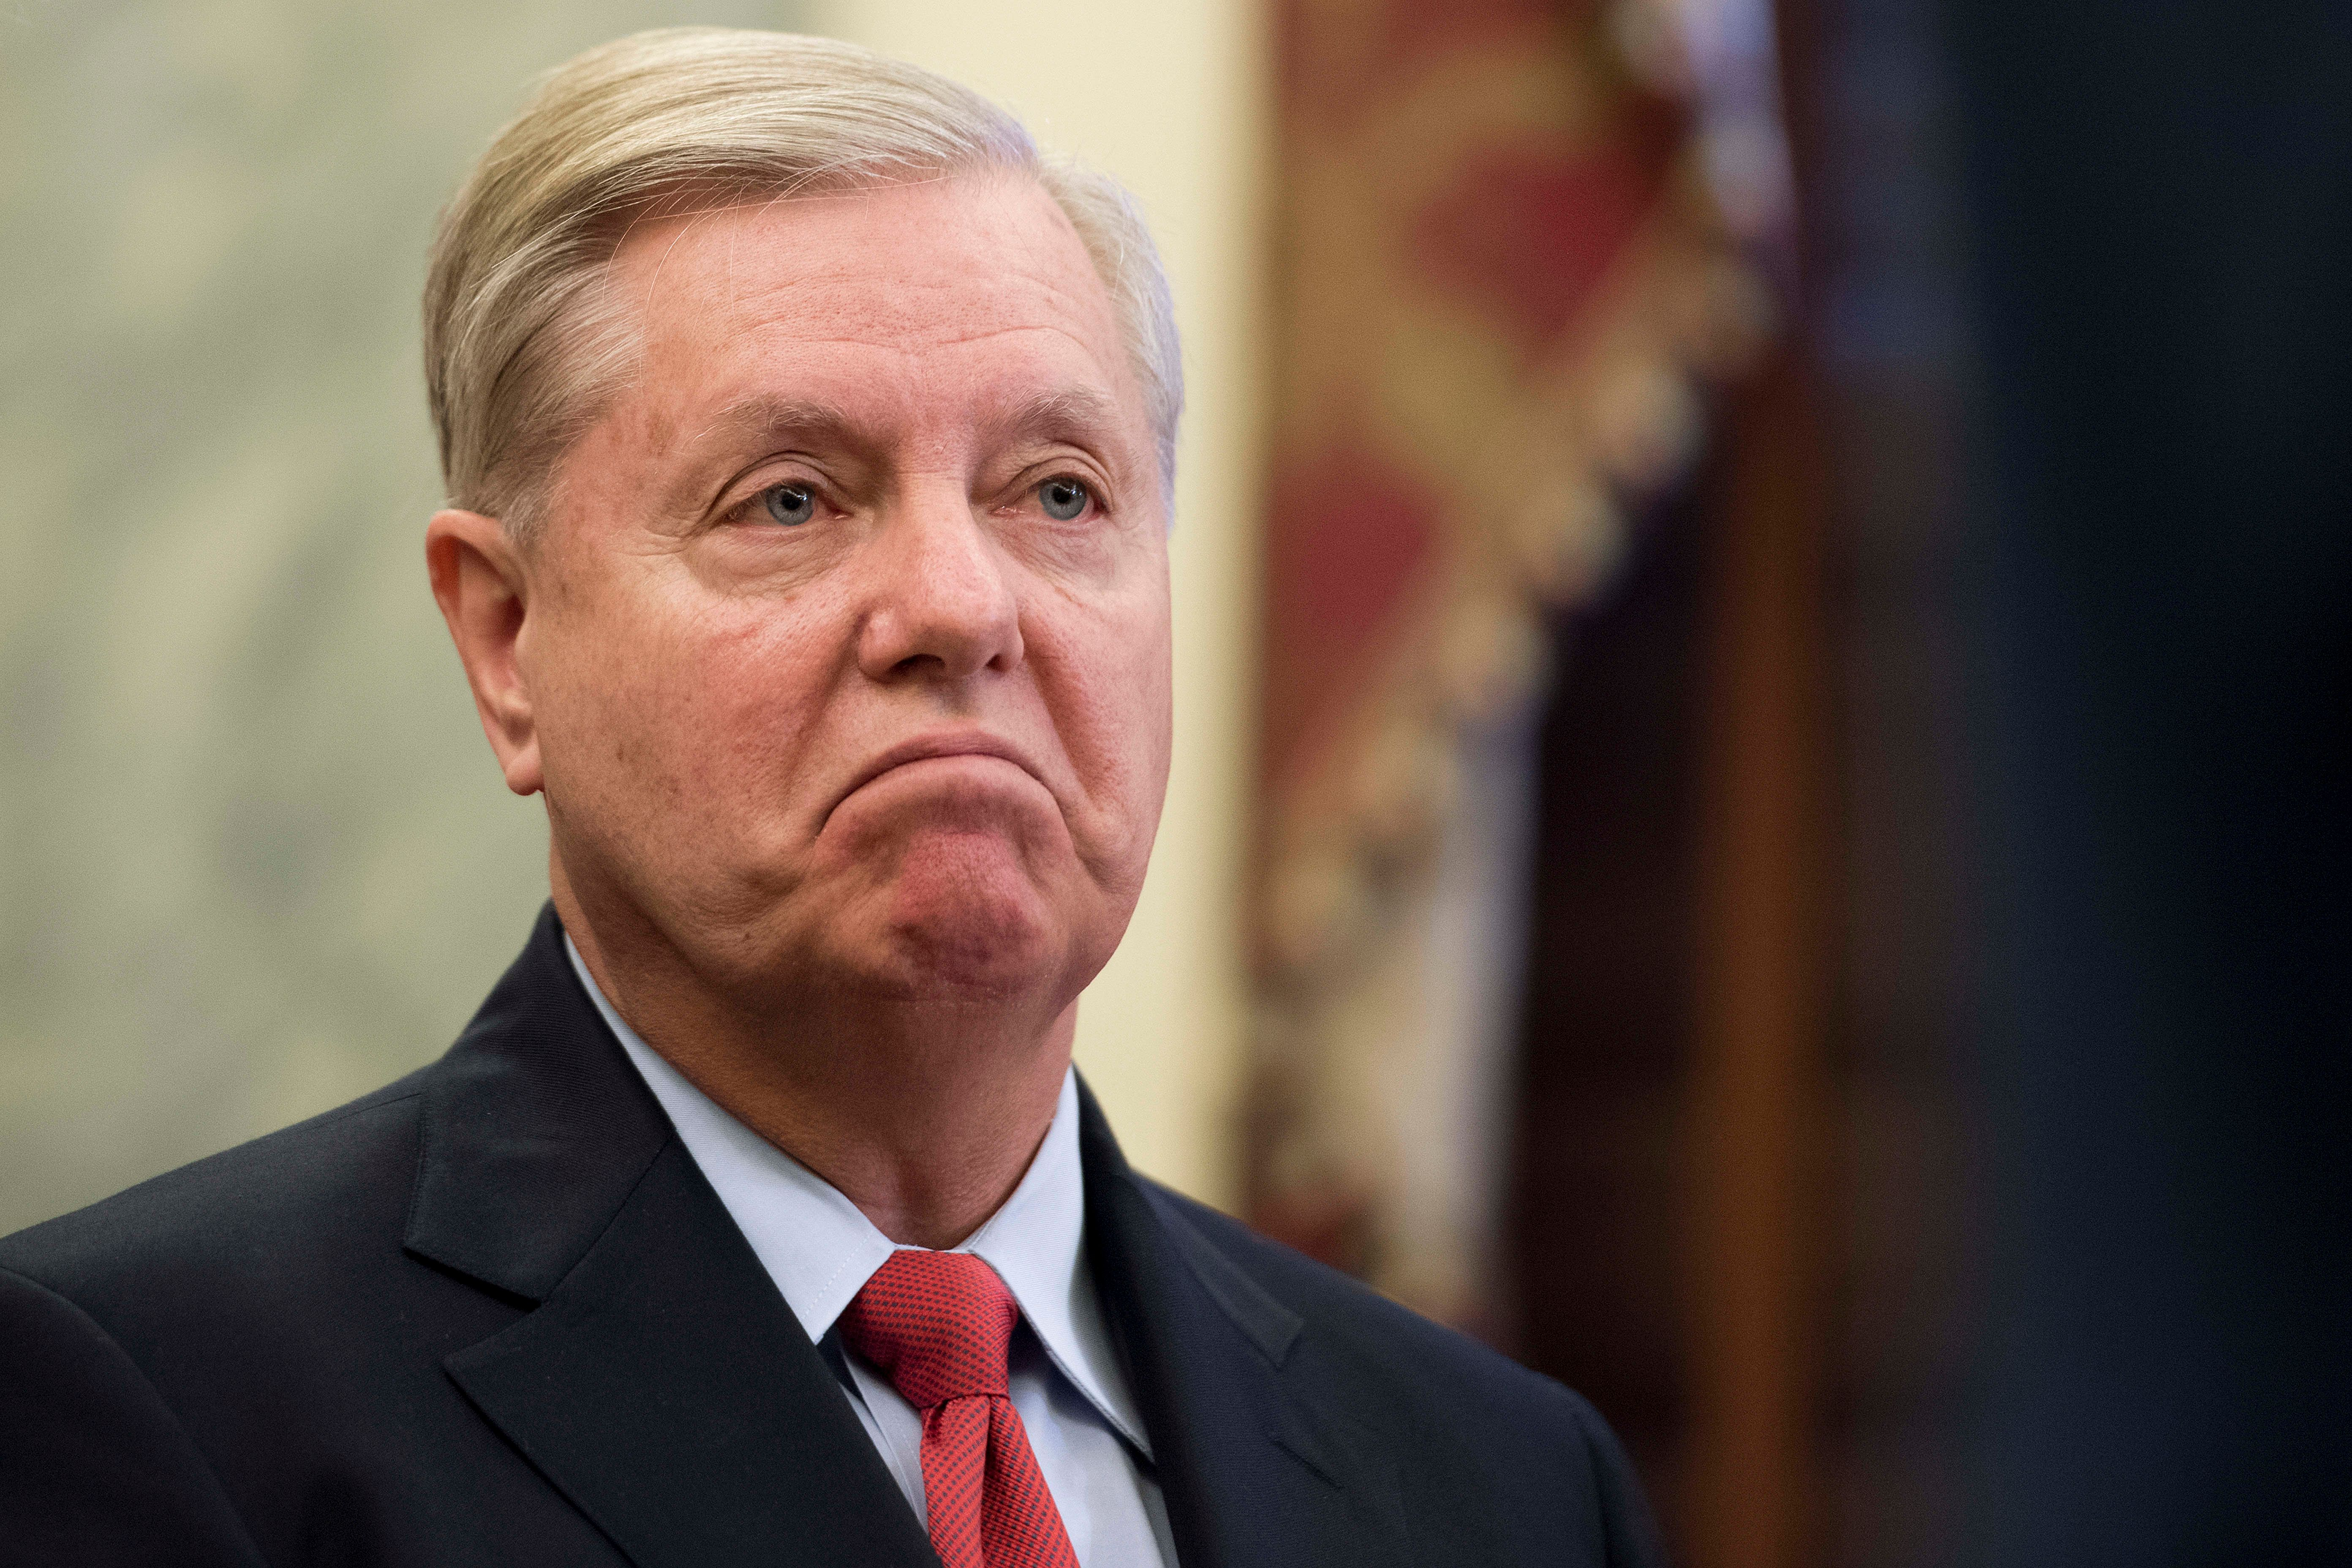 Senator Lindsey Graham, R-SC, announces legislation to repeal and replace Obamacare through block grants on Capitol Hill in Washington, DC, on September 13, 2017.   / AFP PHOTO / JIM WATSON        (Photo credit should read JIM WATSON/AFP/Getty Images)